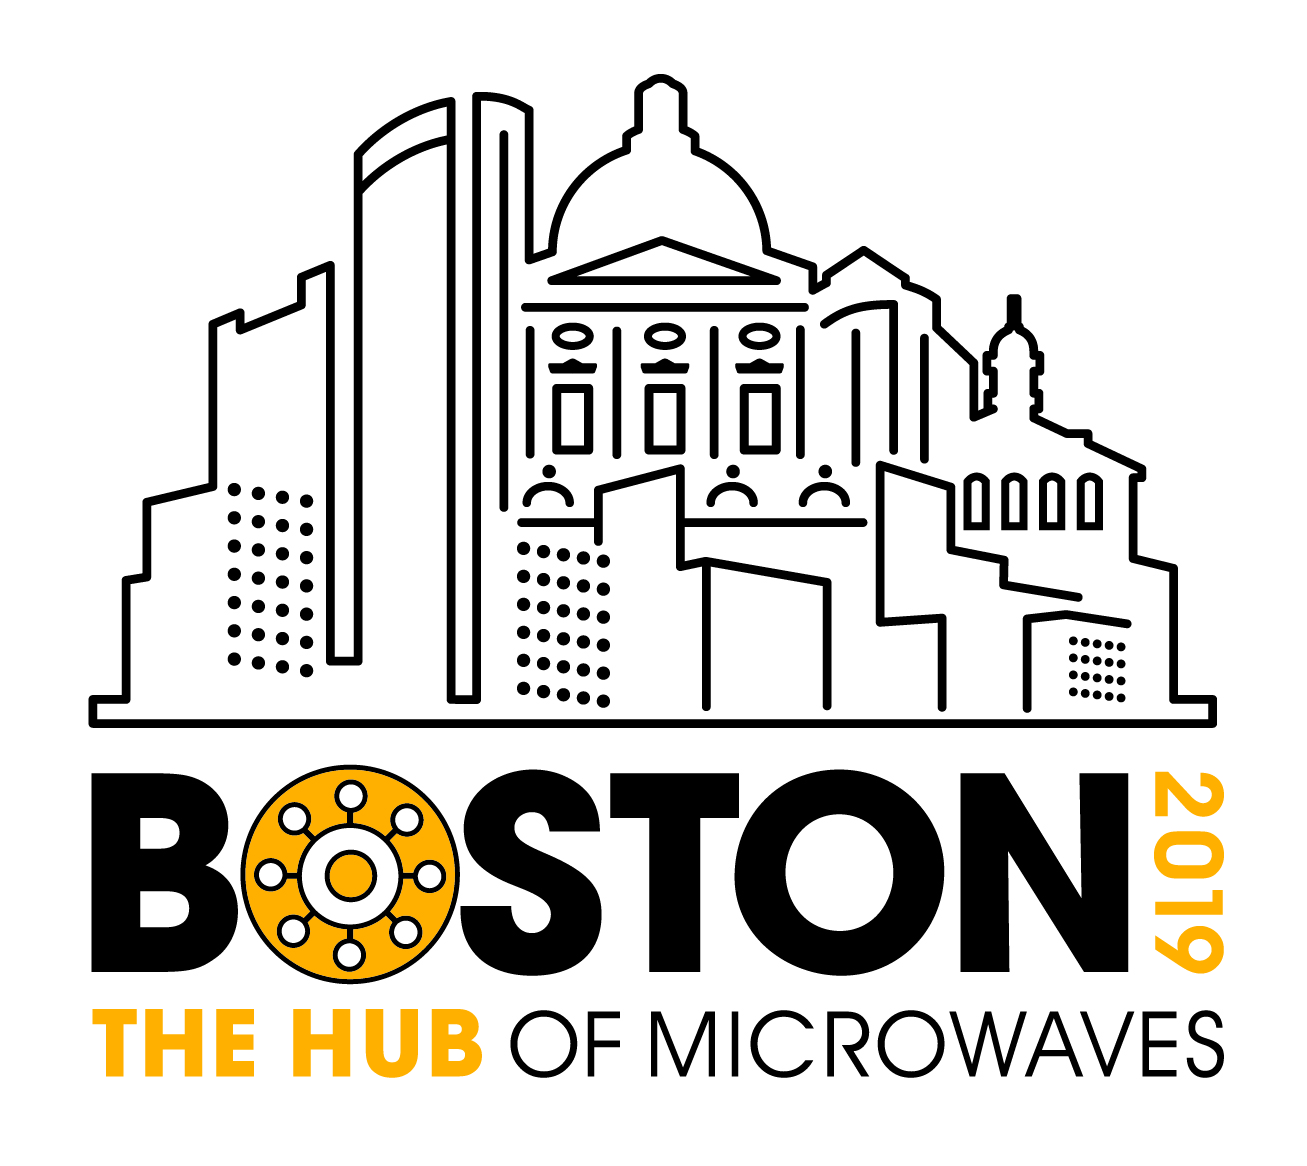 IEEE Microwave Week | IMS2019 | IMS2019 Logos